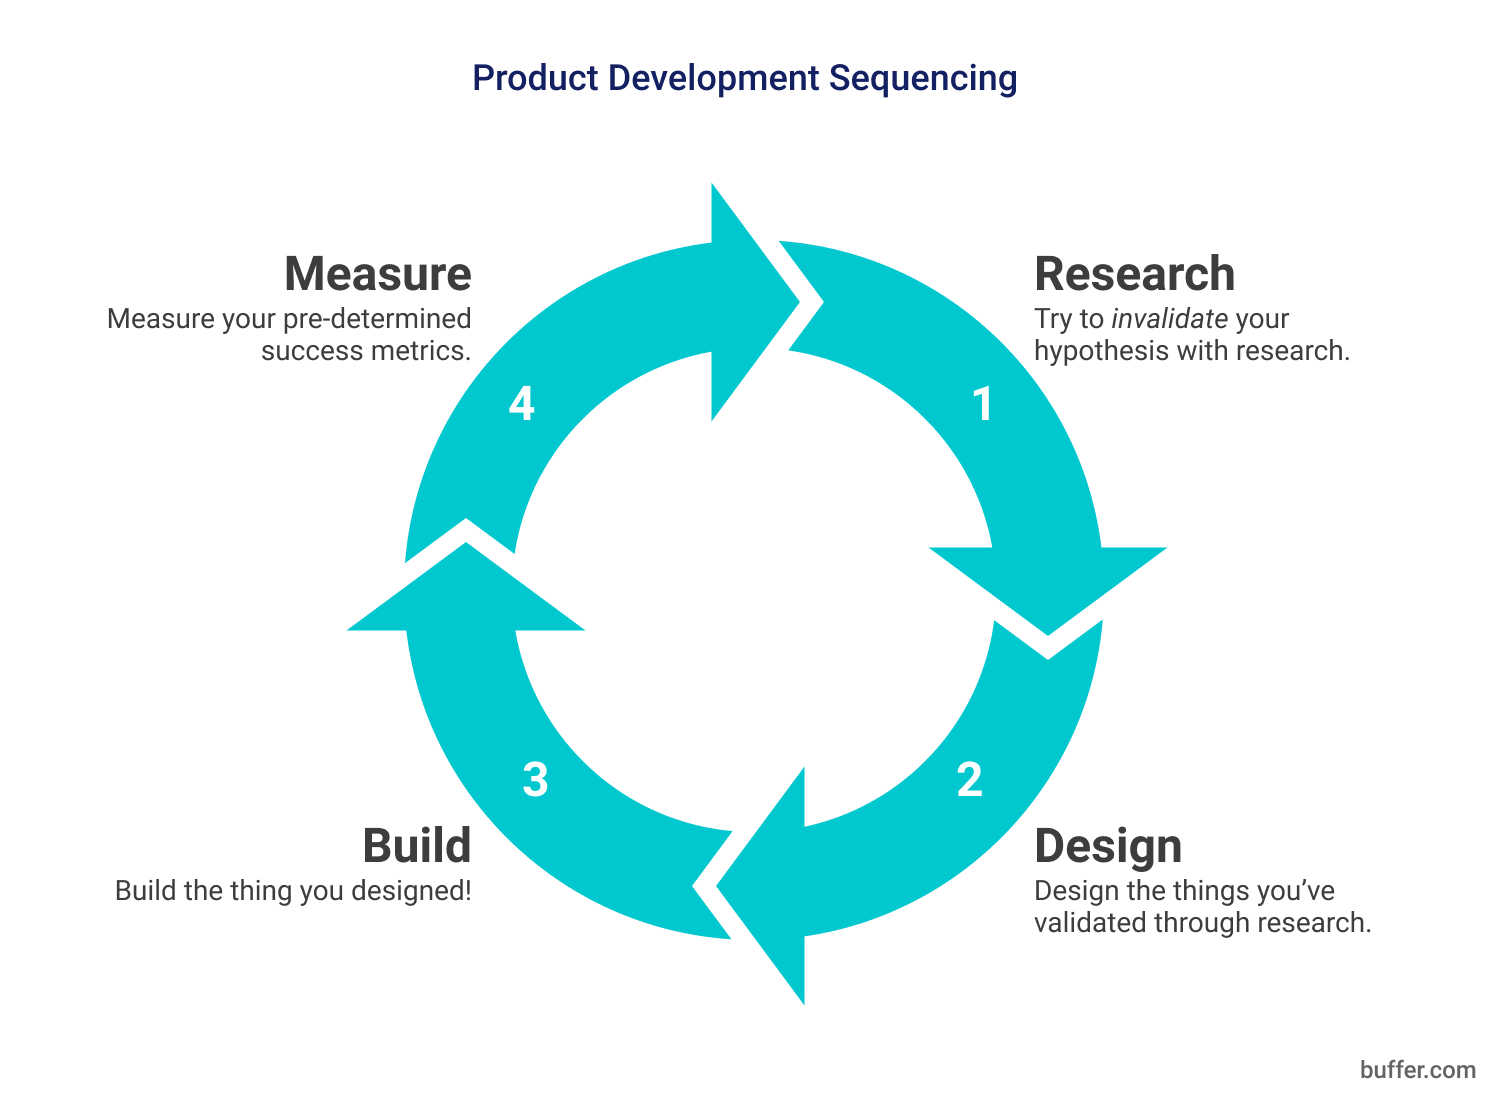 Product Development Sequencing